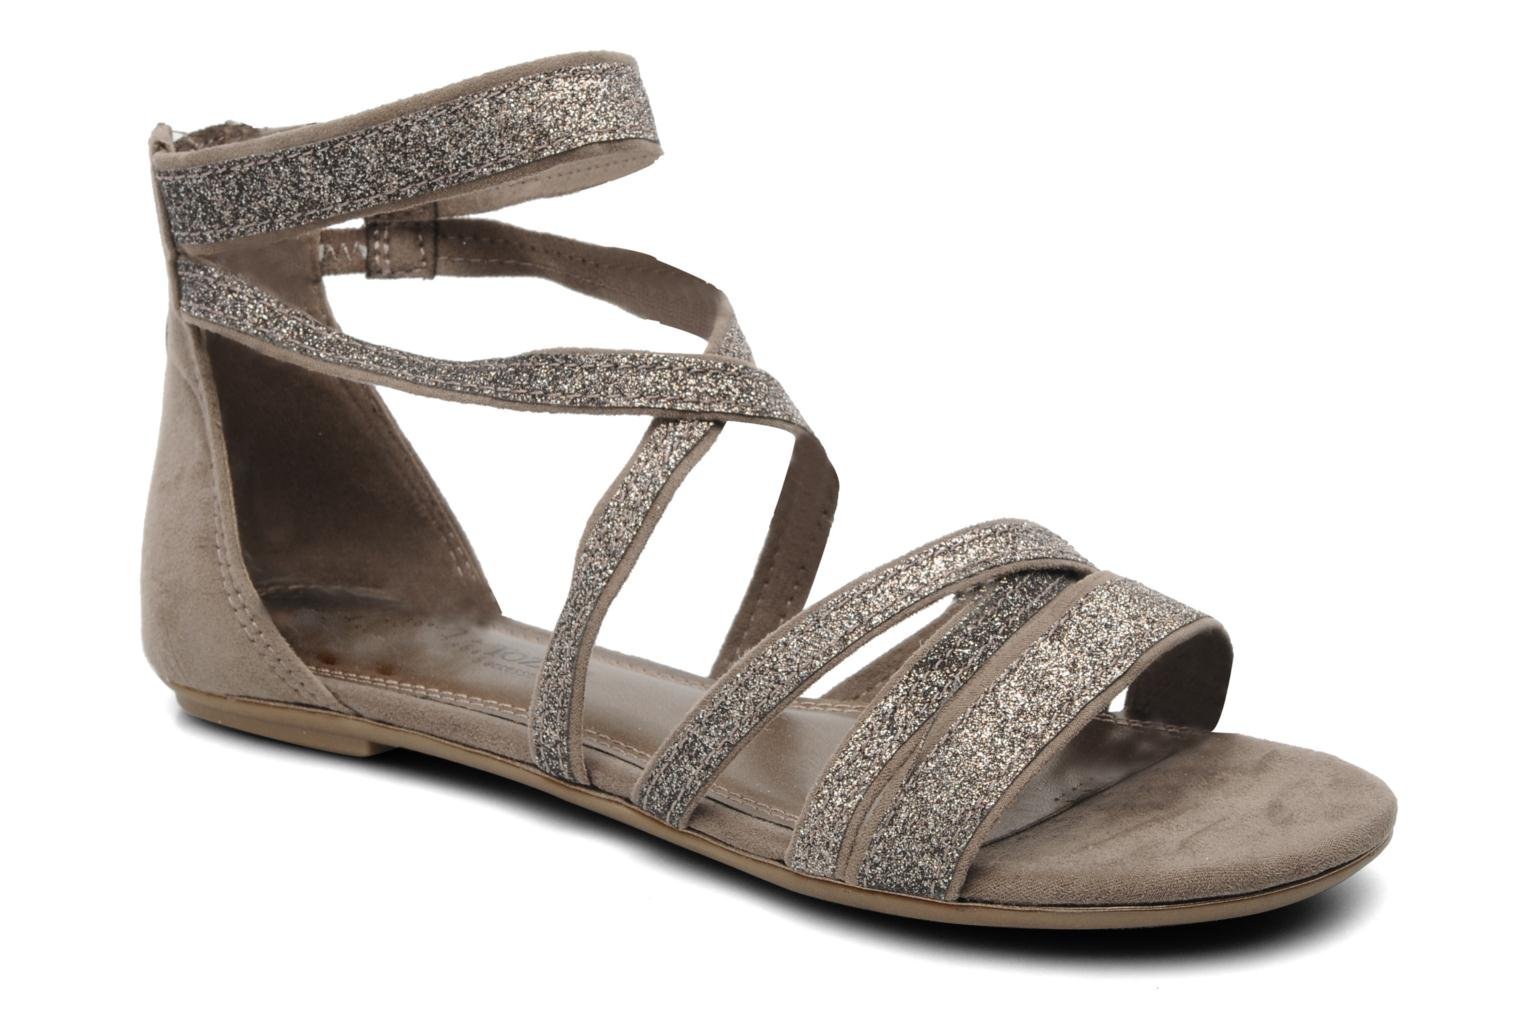 Marco Tozzi Sandals Marco Tozzi Bobesco Sandals in